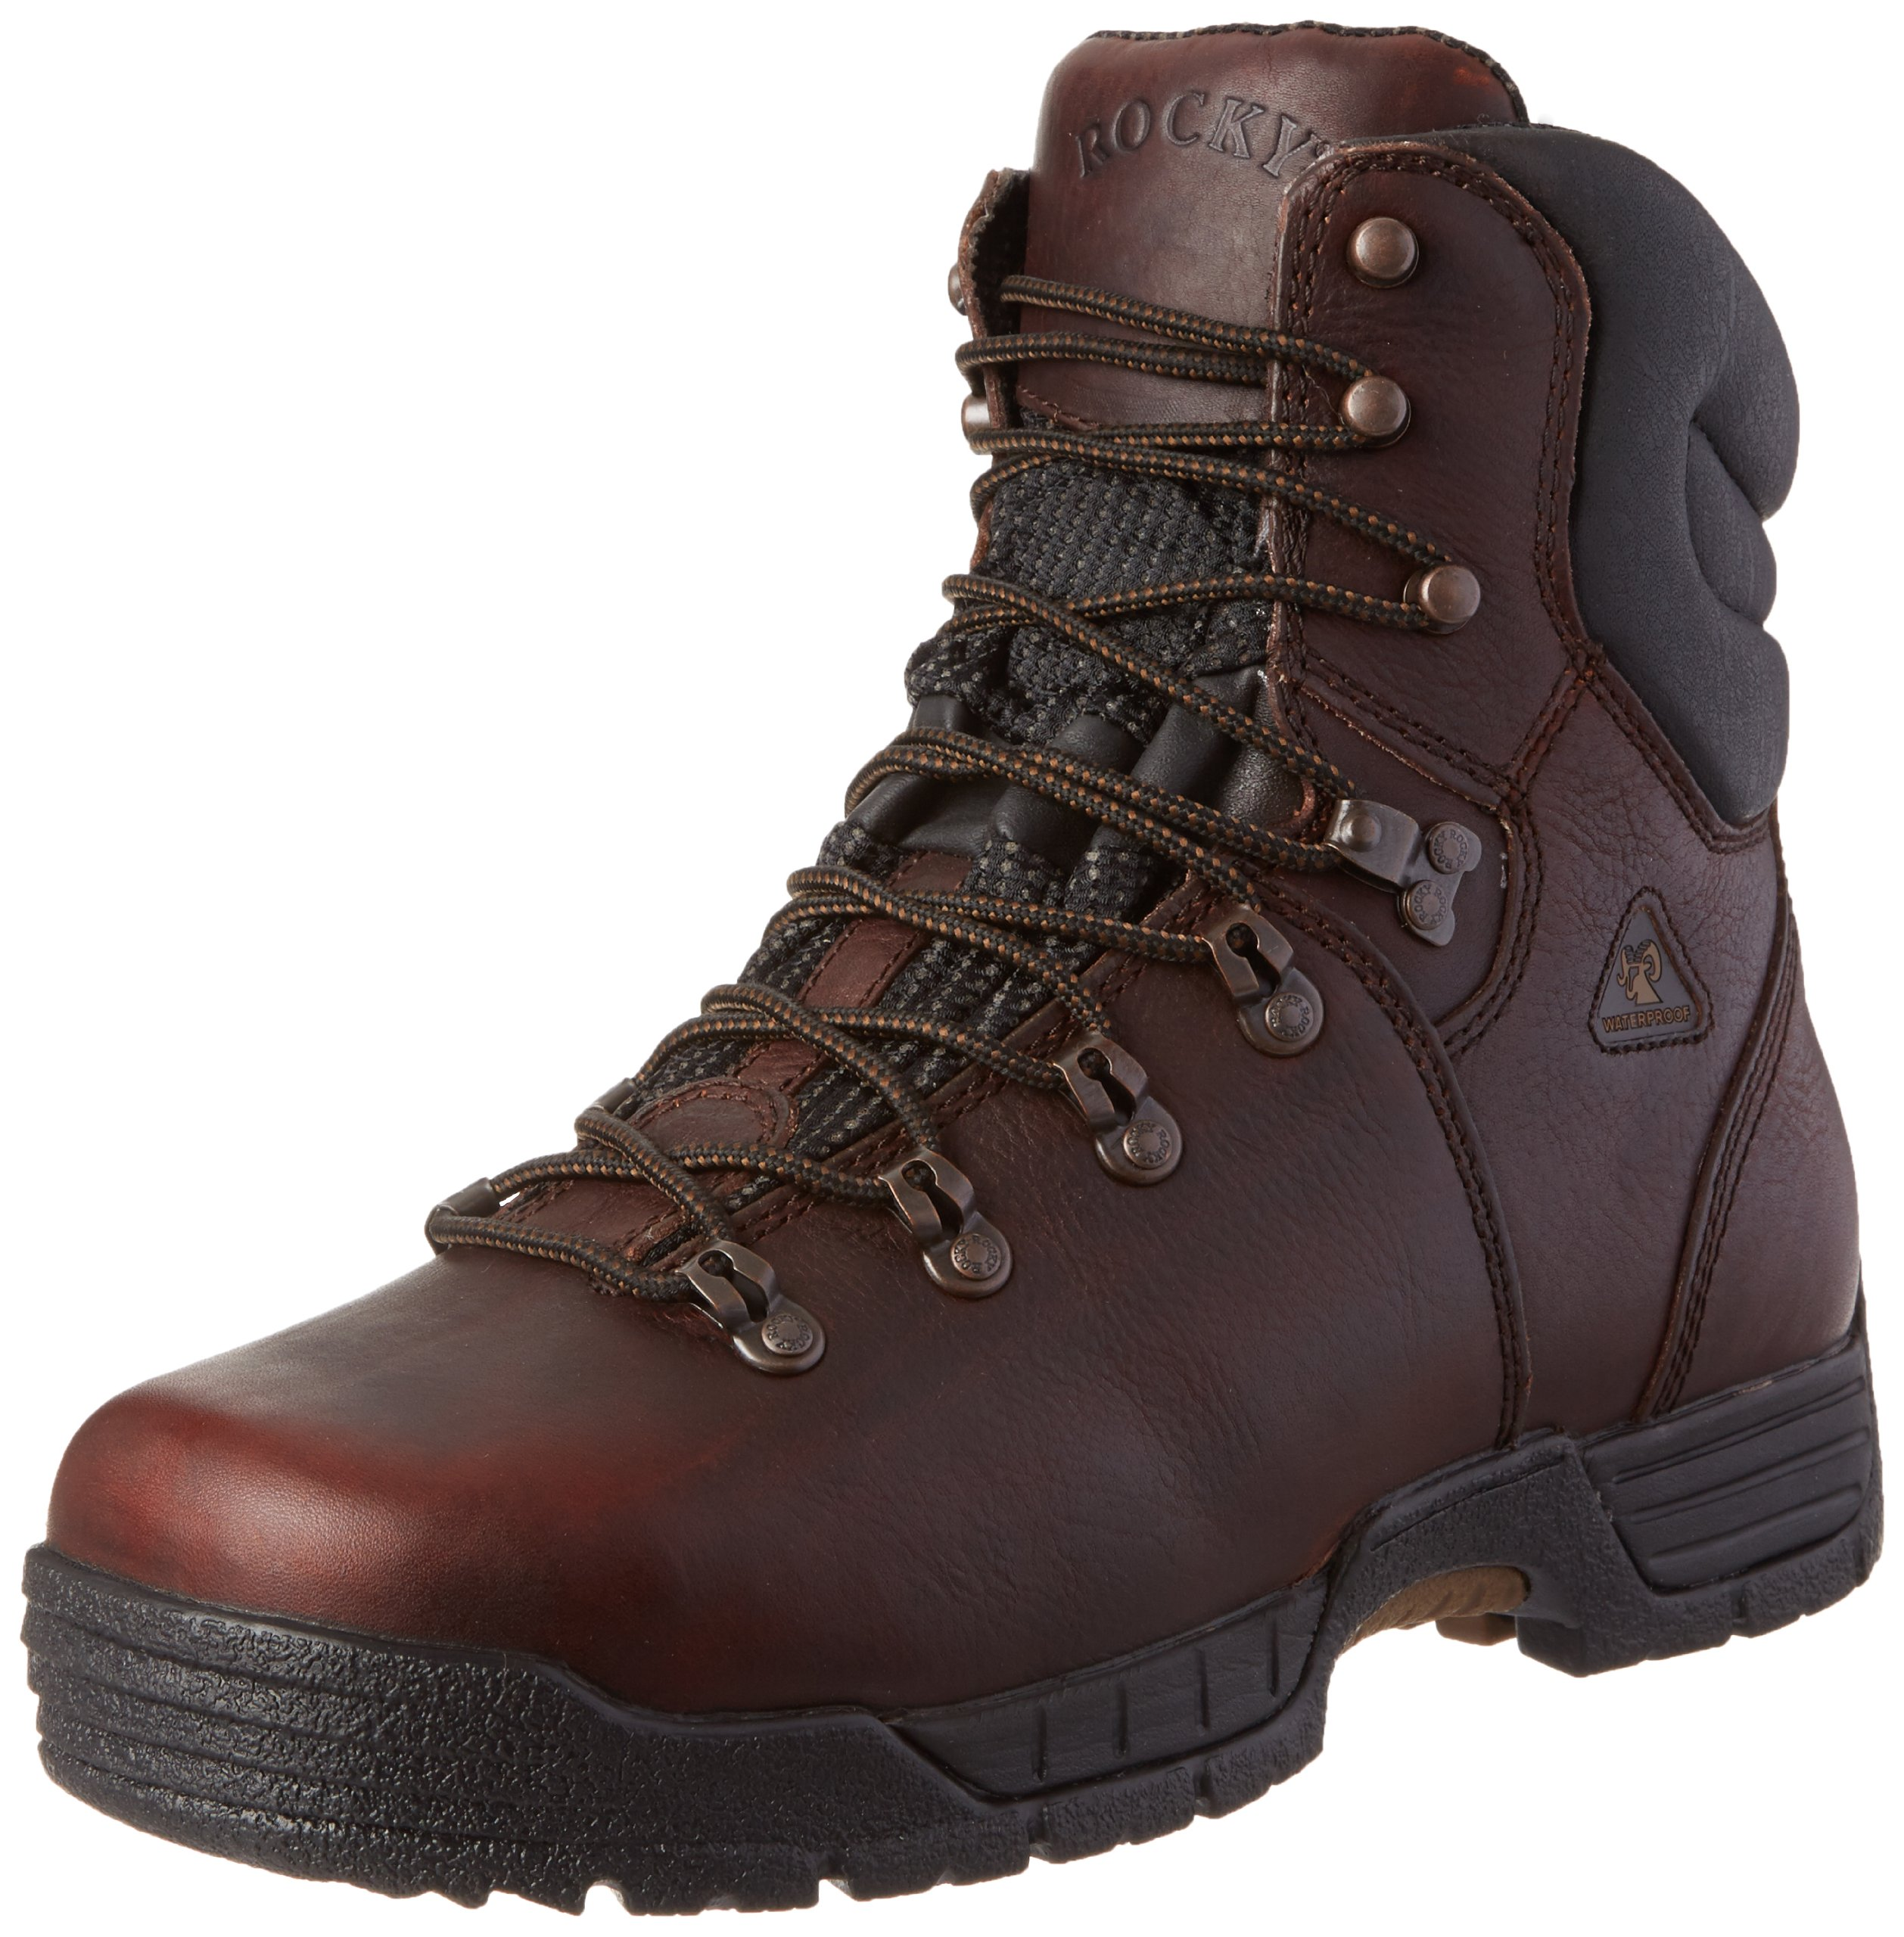 Rocky Men's Mobilite Eight Inch Steel Toe Work Boot,Brown,16 M US by Rocky